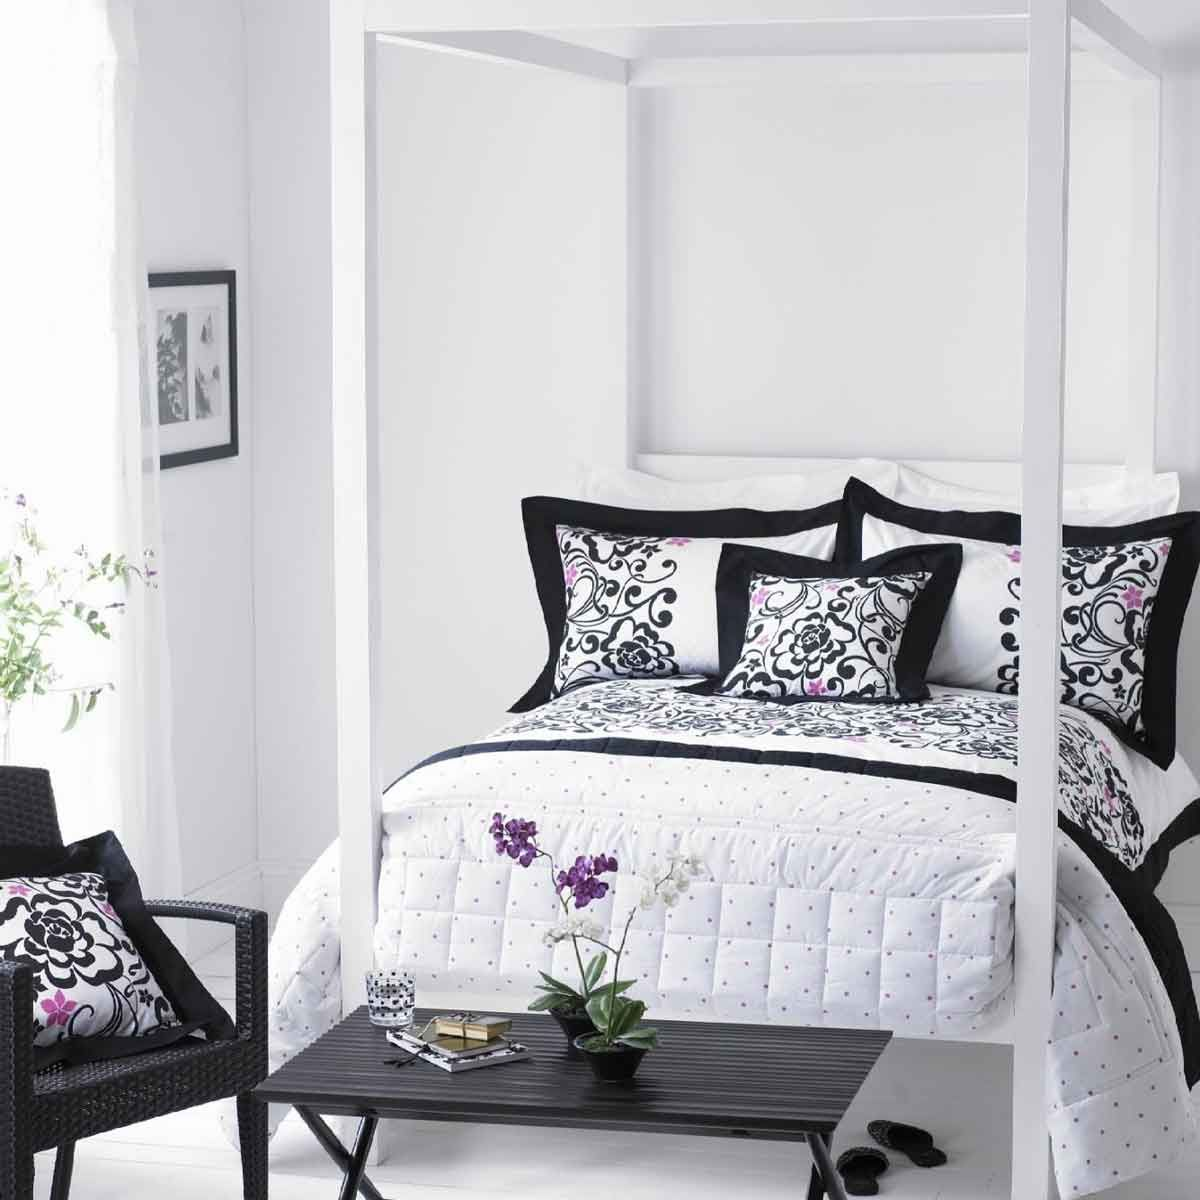 11 Amazing Bedroom Decor Ideas In Black And White! I Love Black And White